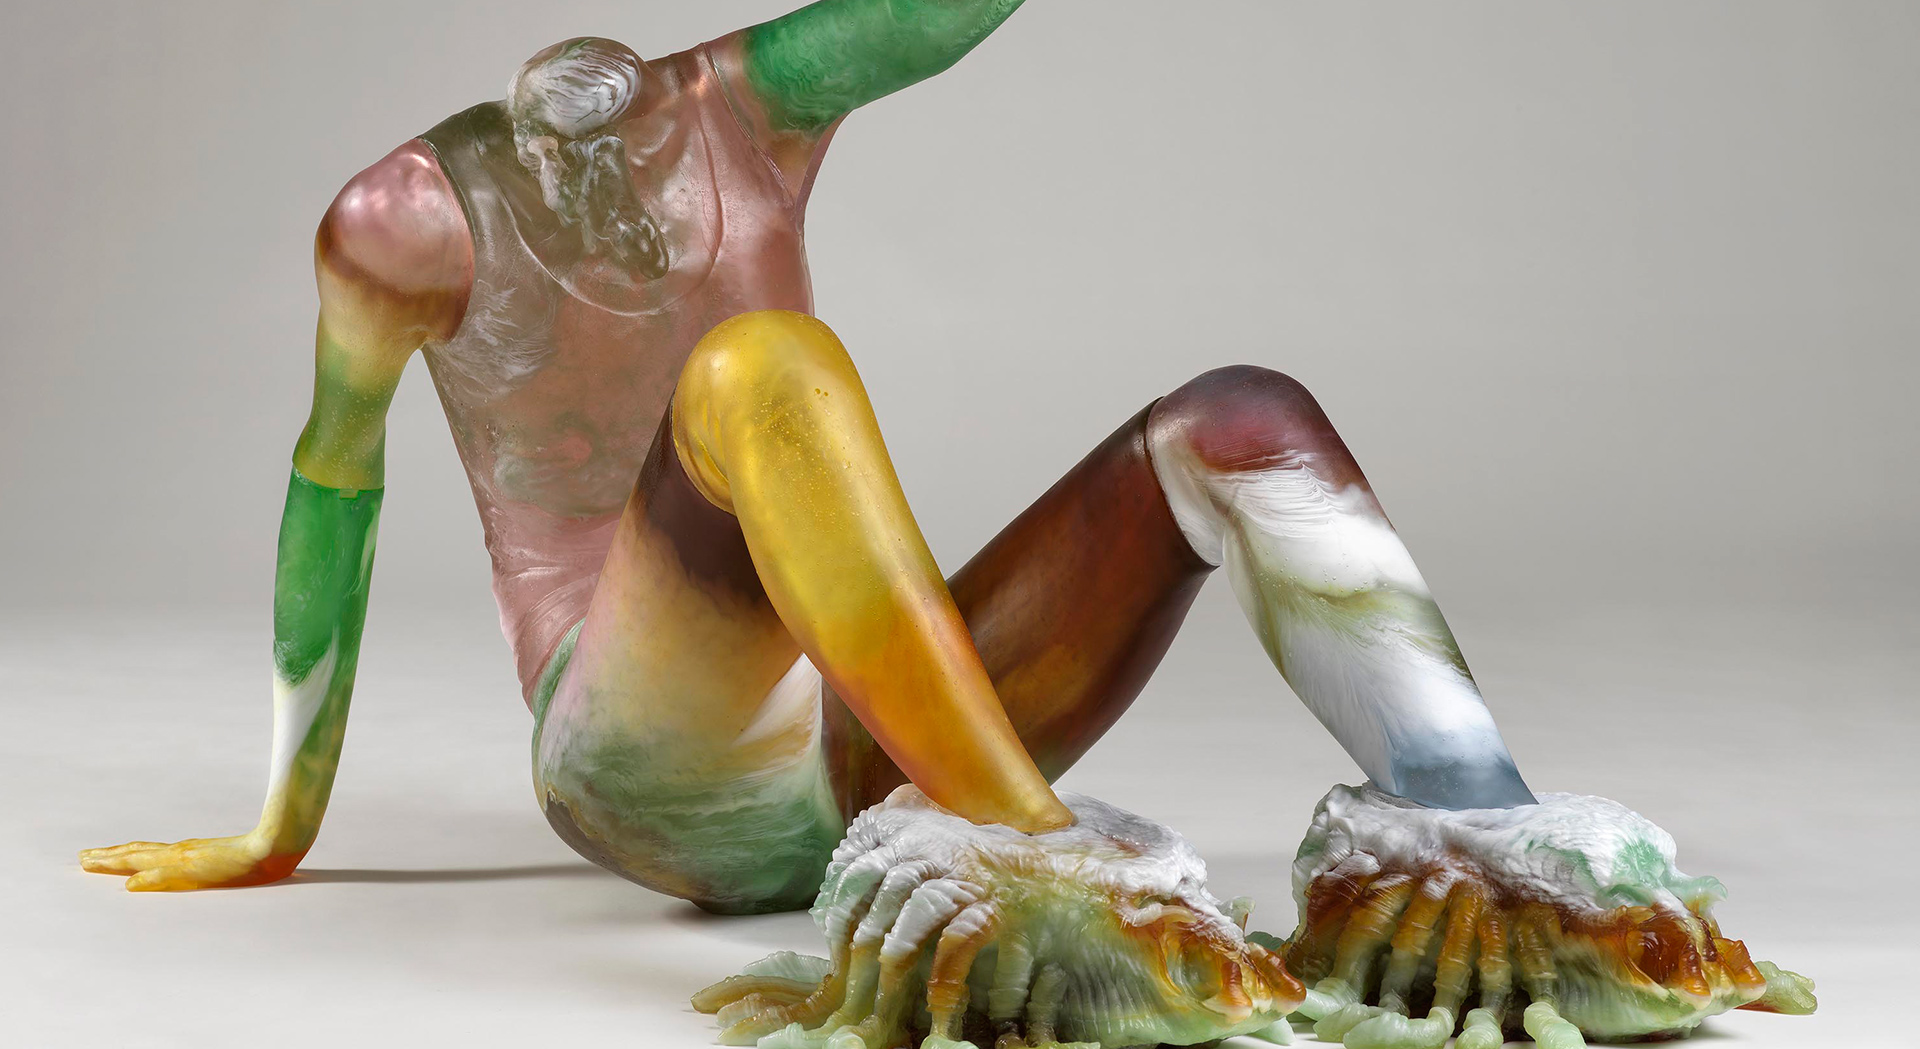 A detail of a sculpture by Andra Ursuta, titled Predators 'R Us, dated 2020.